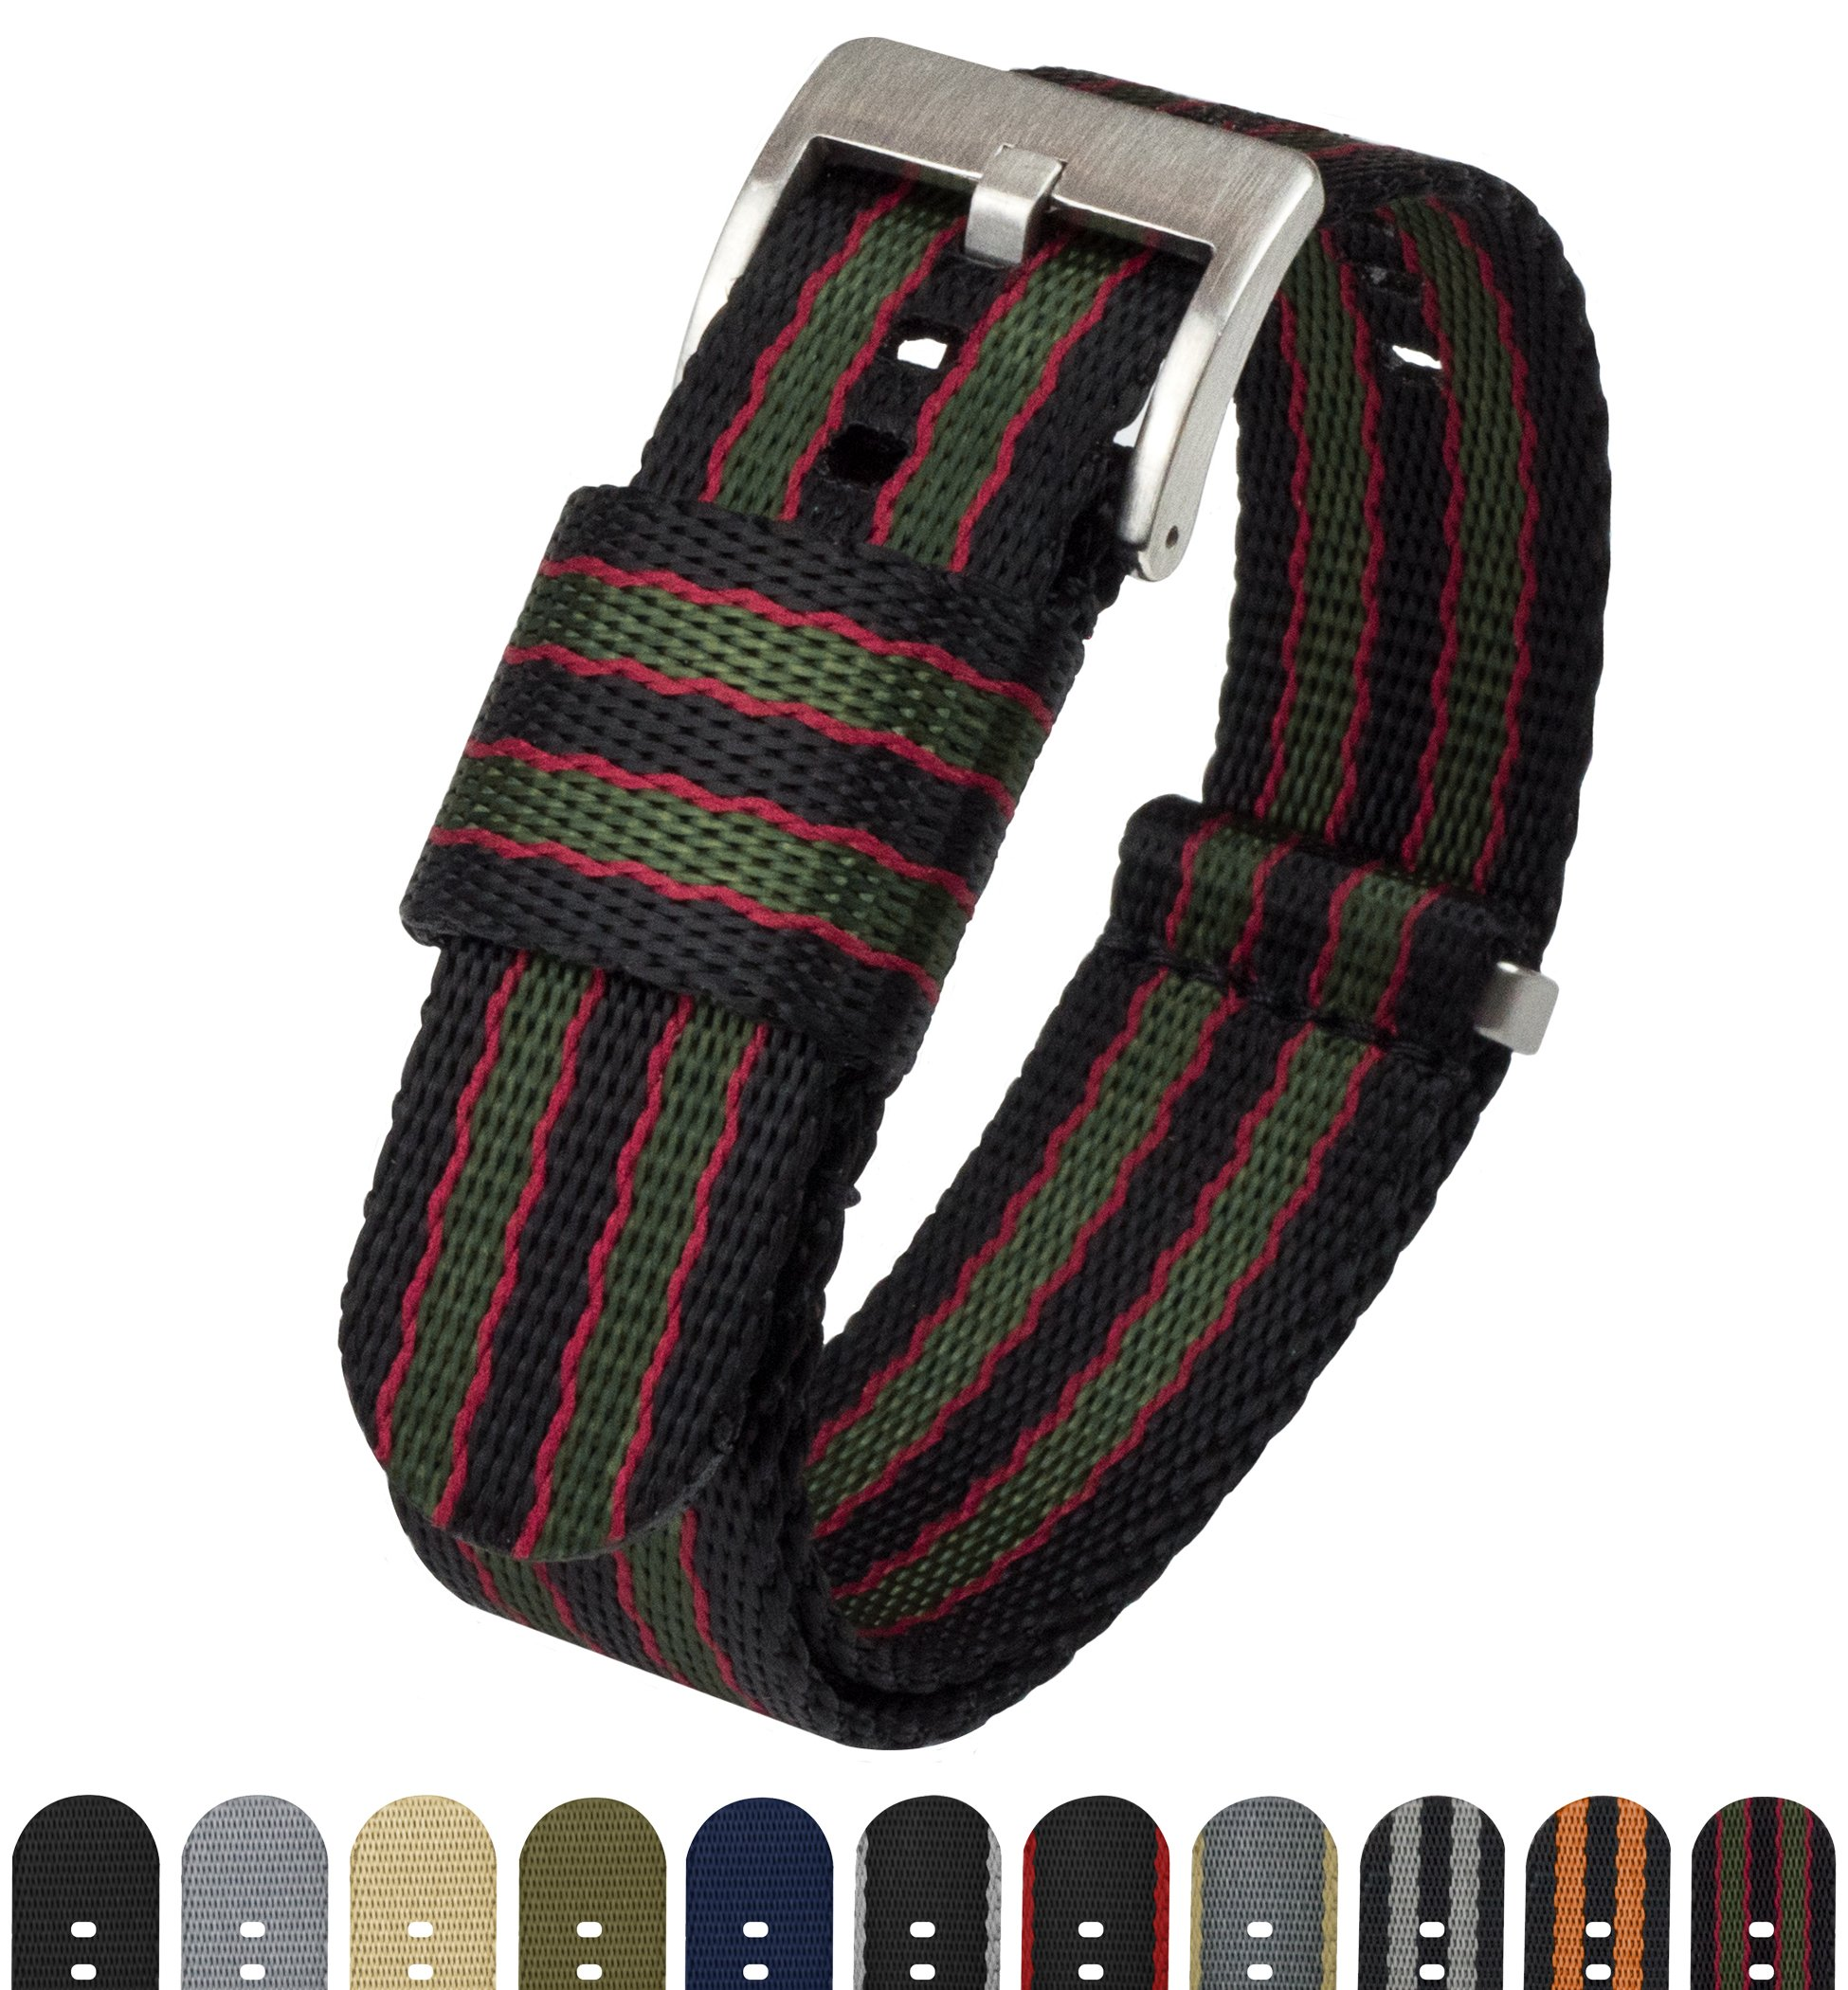 BARTON Jetson NATO Style Watch Strap - 18mm 20mm 22mm or 24mm - Black/Green/Red Classic Bond 20mm Nylon Watch Band